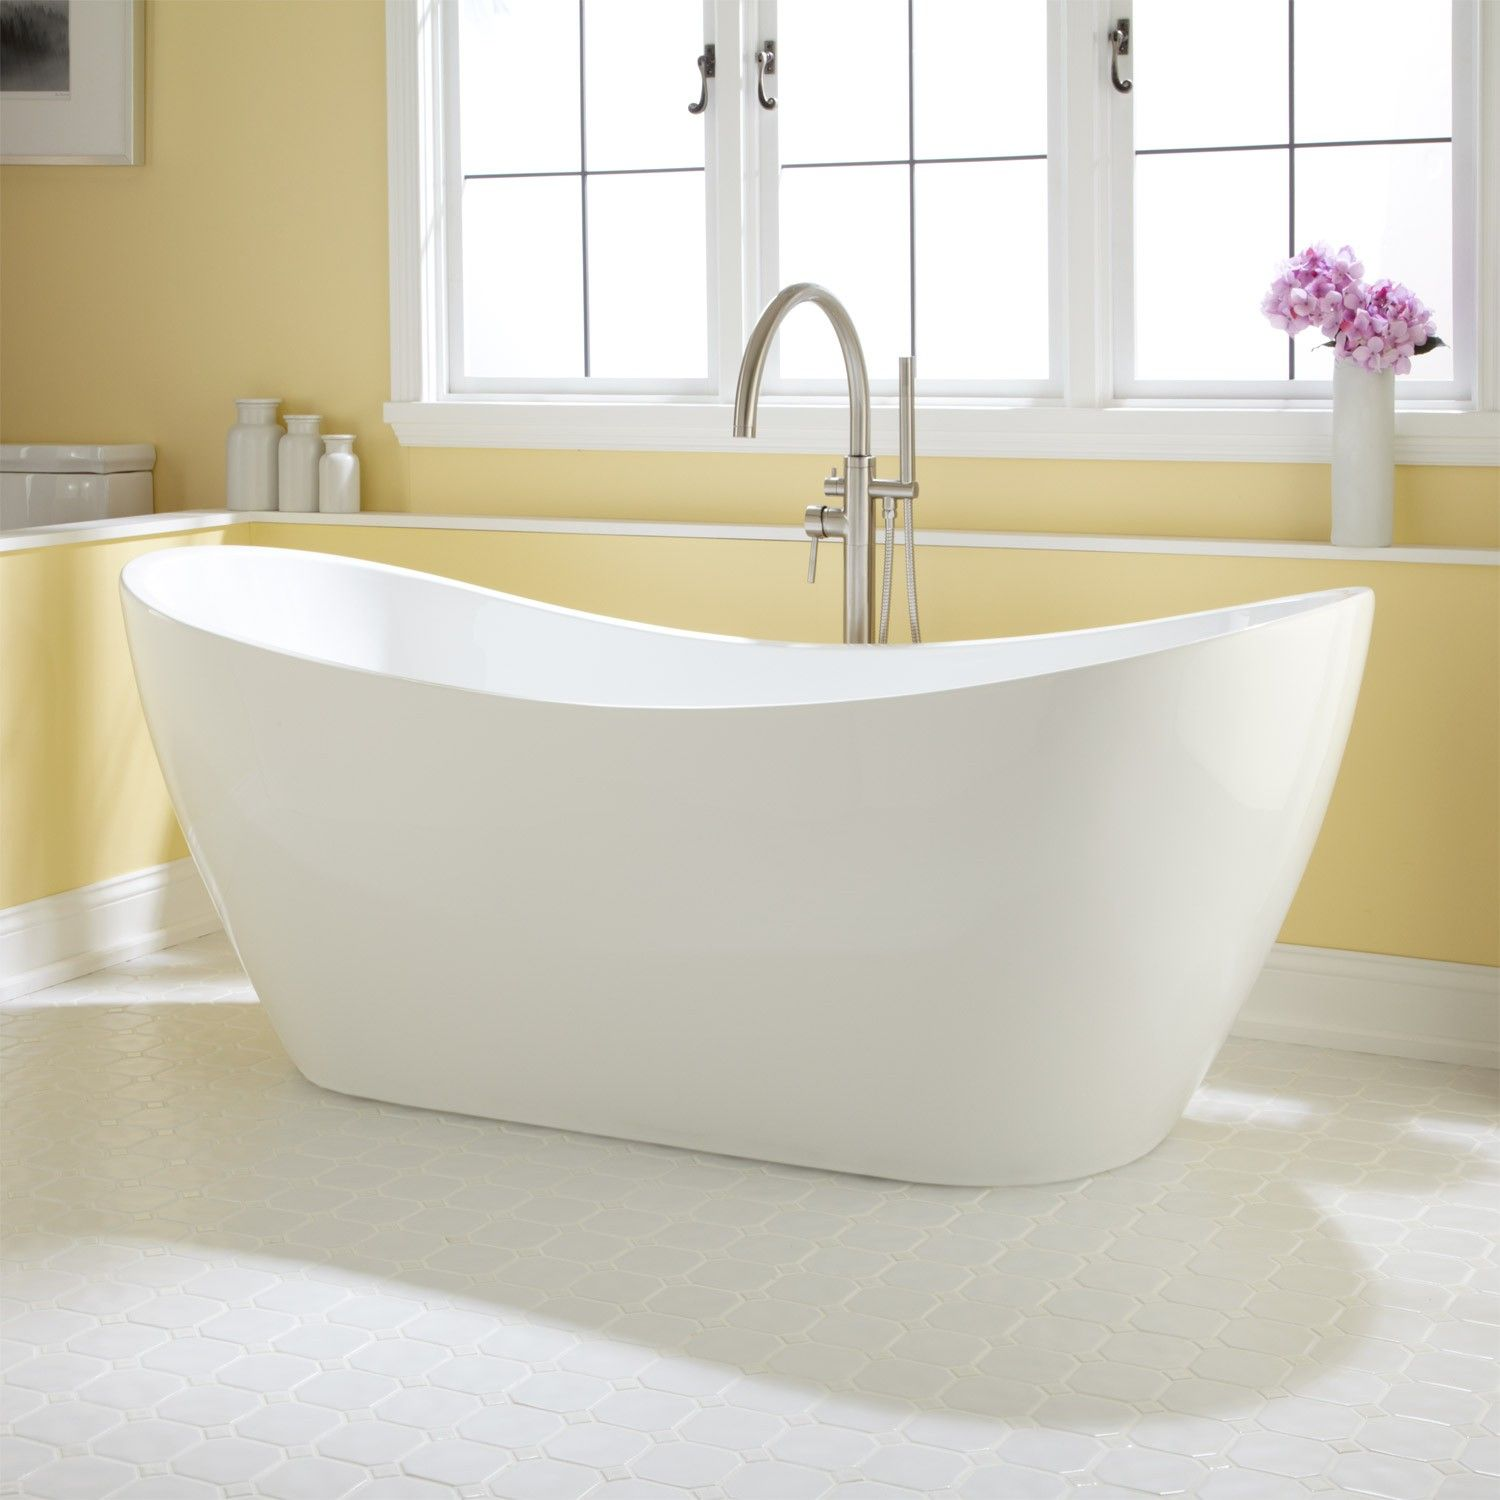 tub air tub acrylic tub freestanding bathtub clawfoot tubs bath tubs